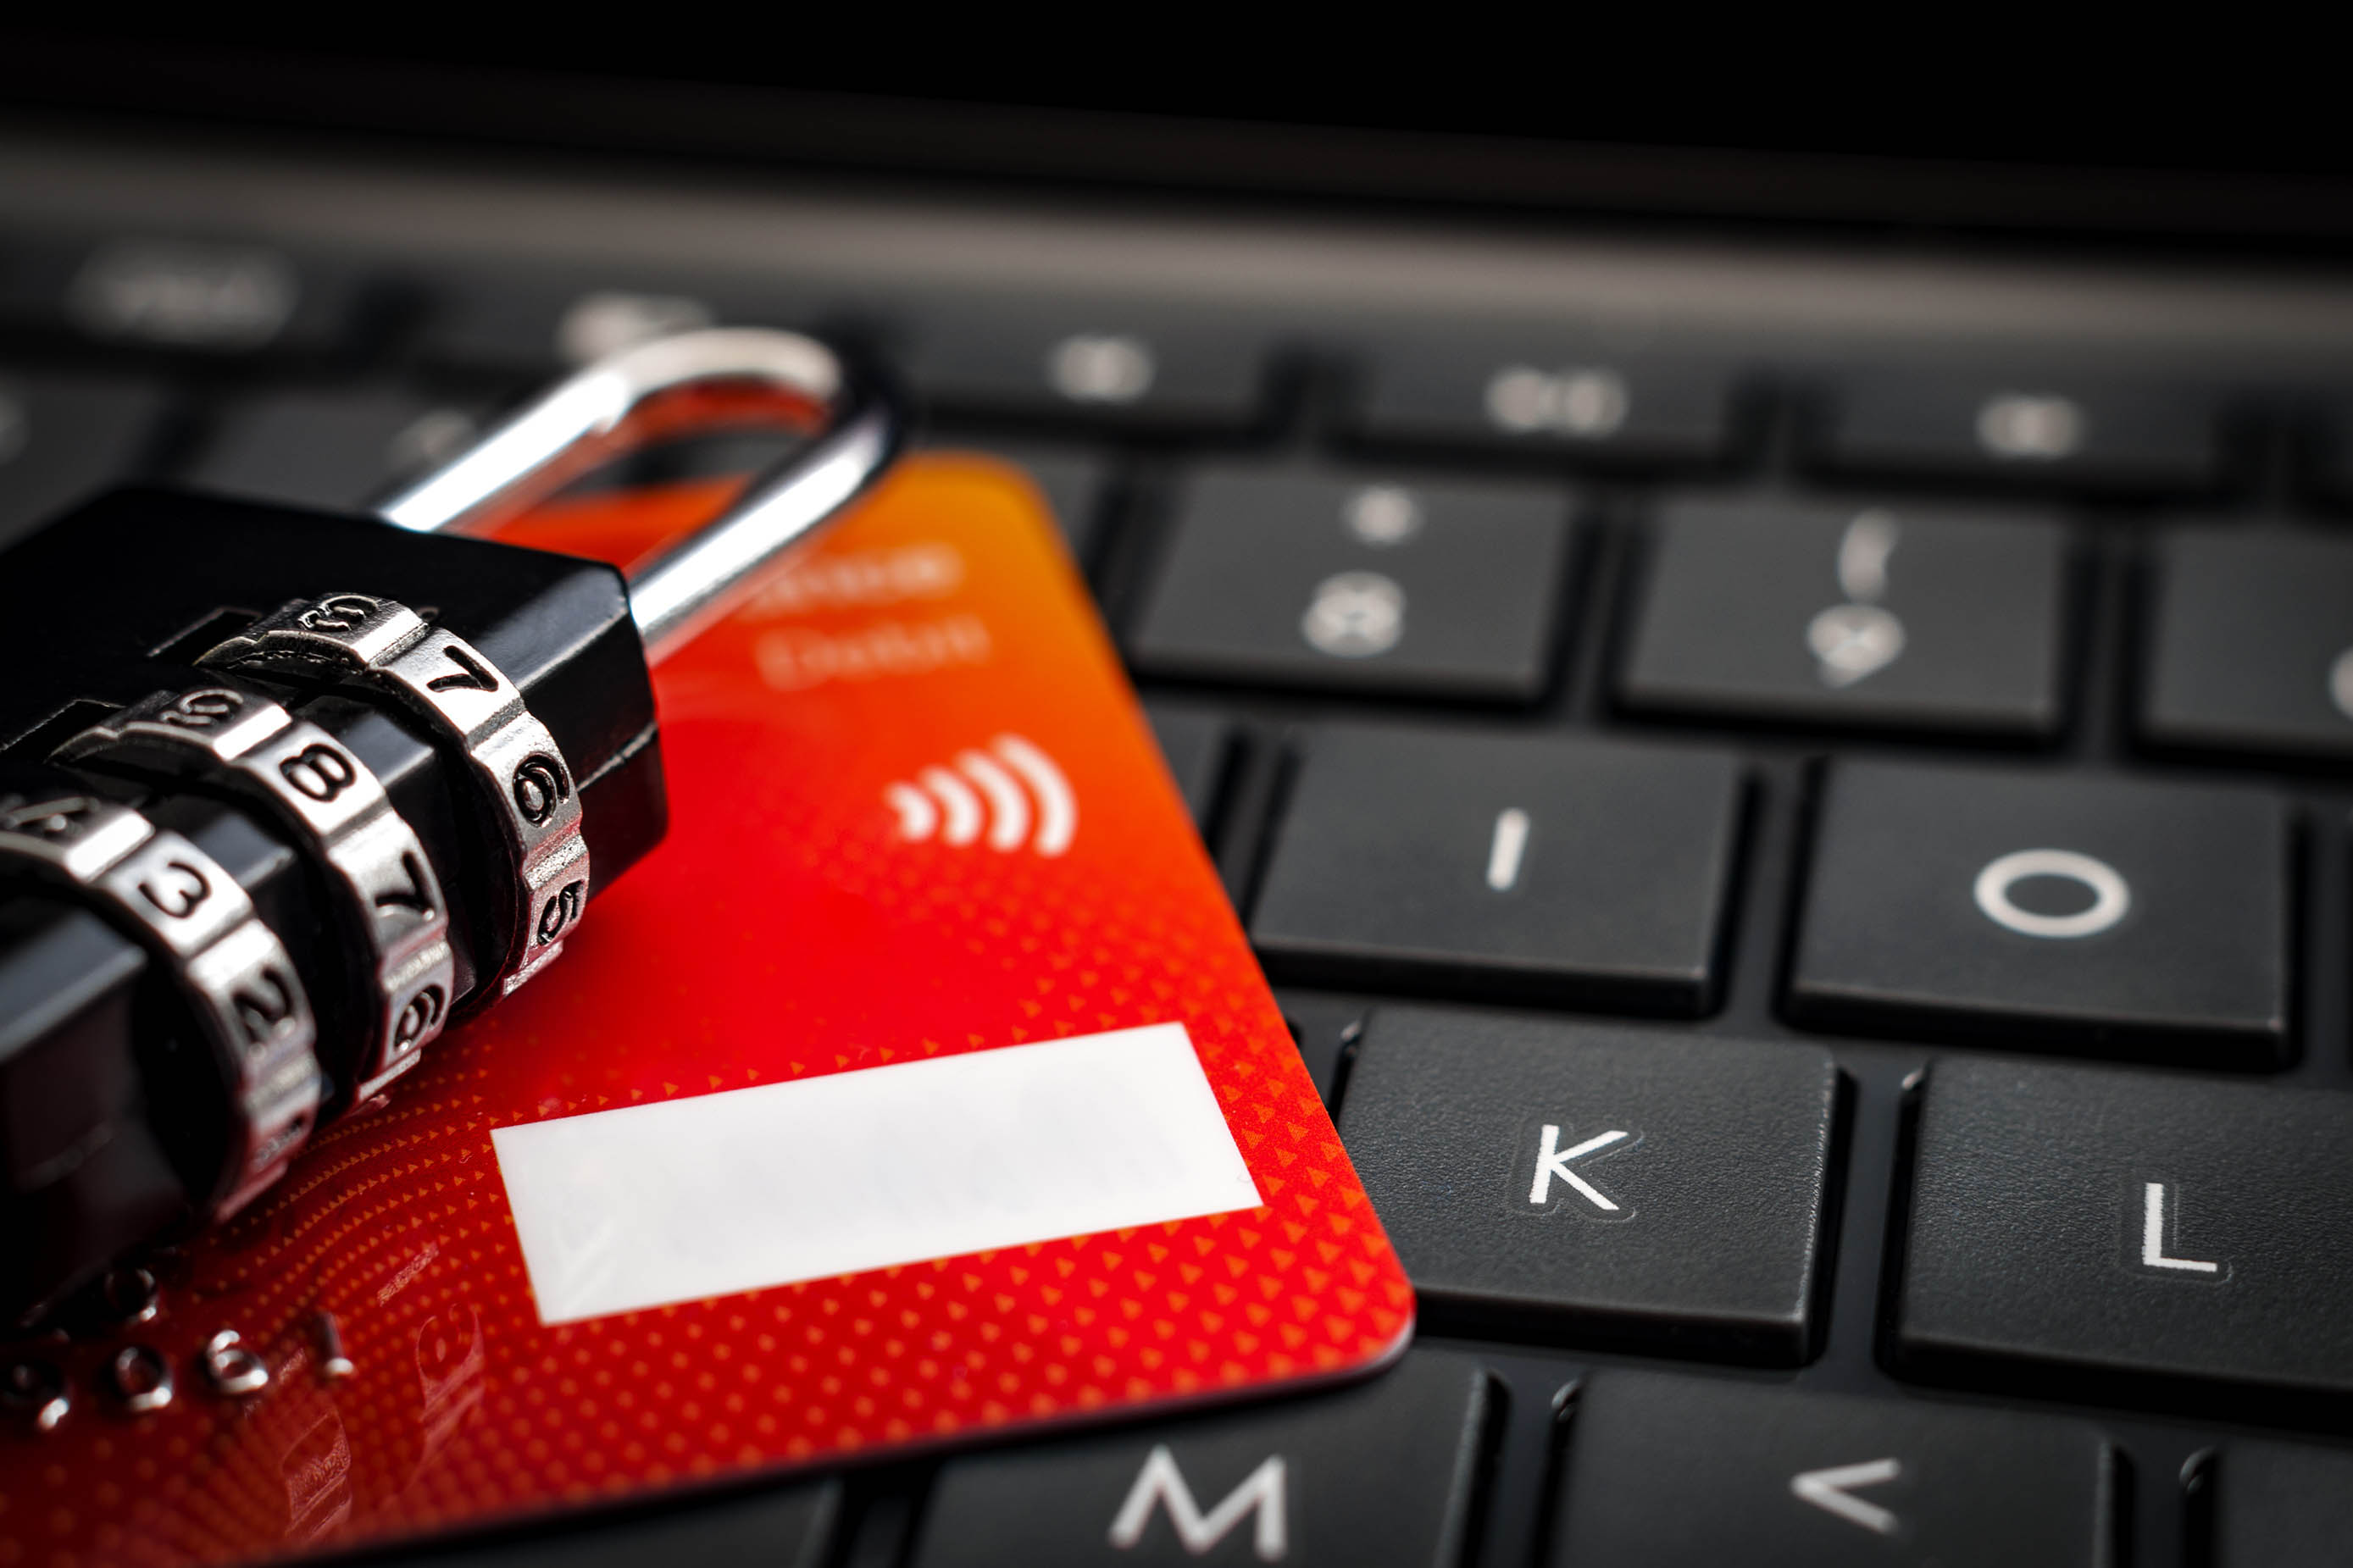 Fraud prevention stock photo lock credit card keyboard